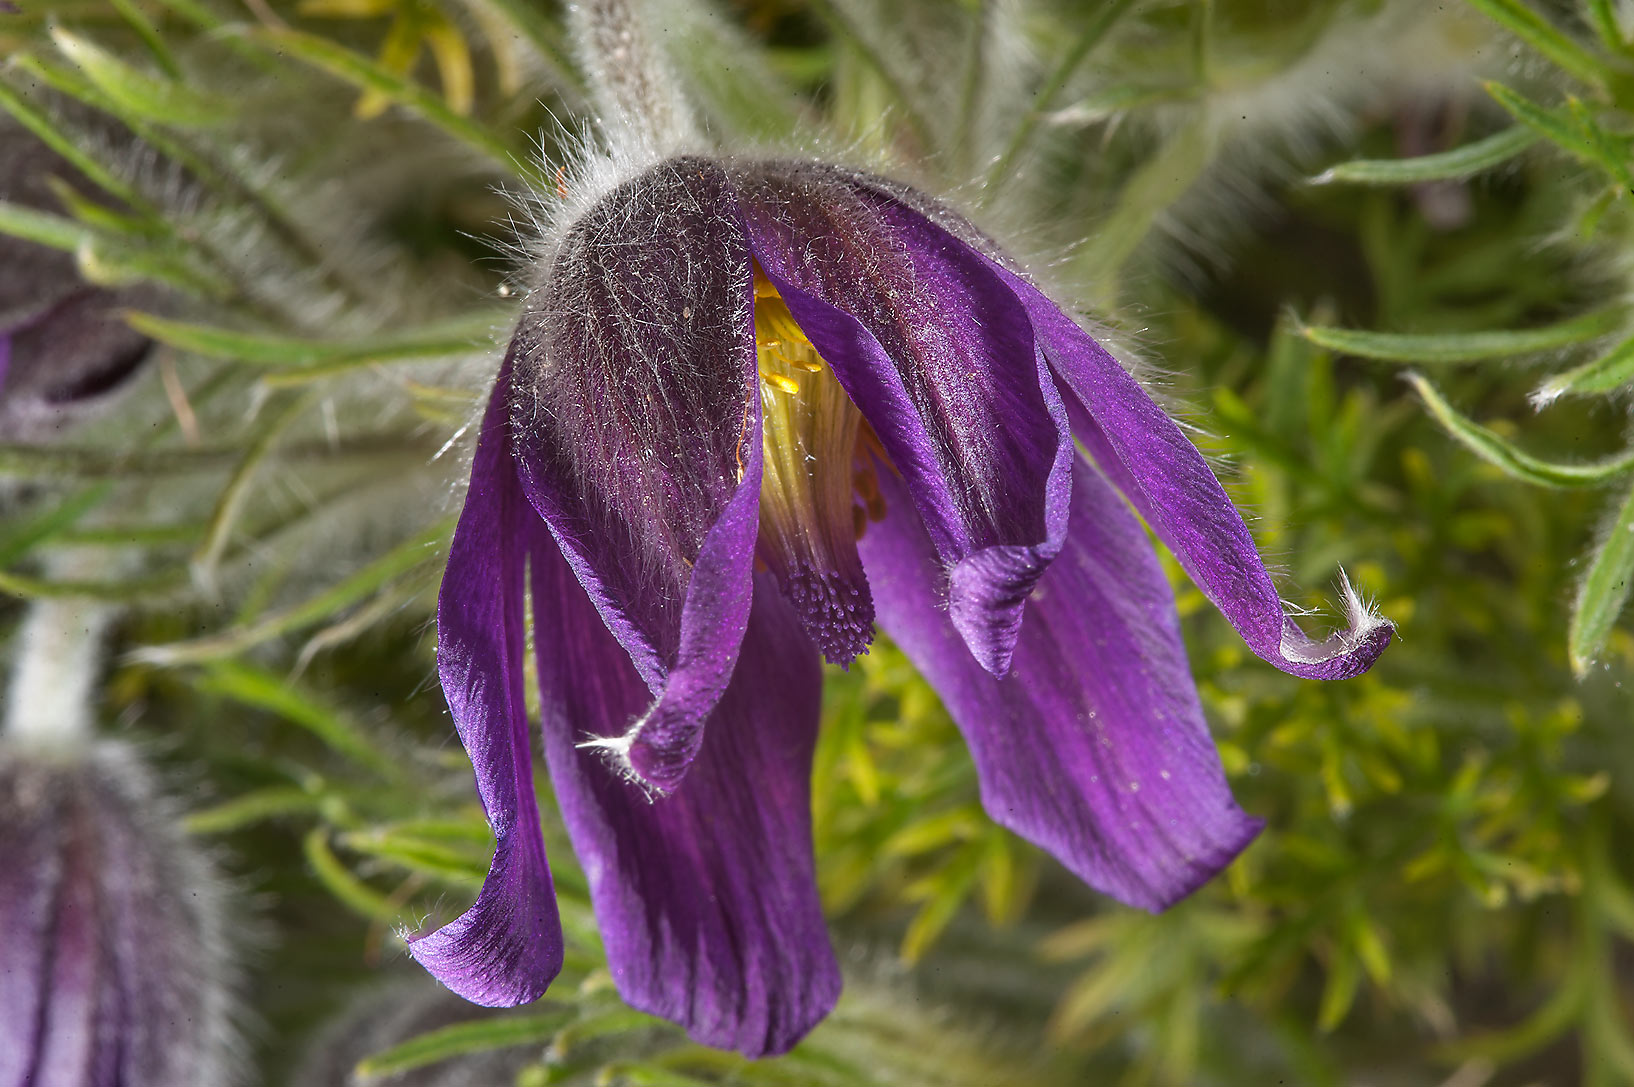 Purle flower of common pasqueflower (Pulsatilla...Institute. St.Petersburg, Russia